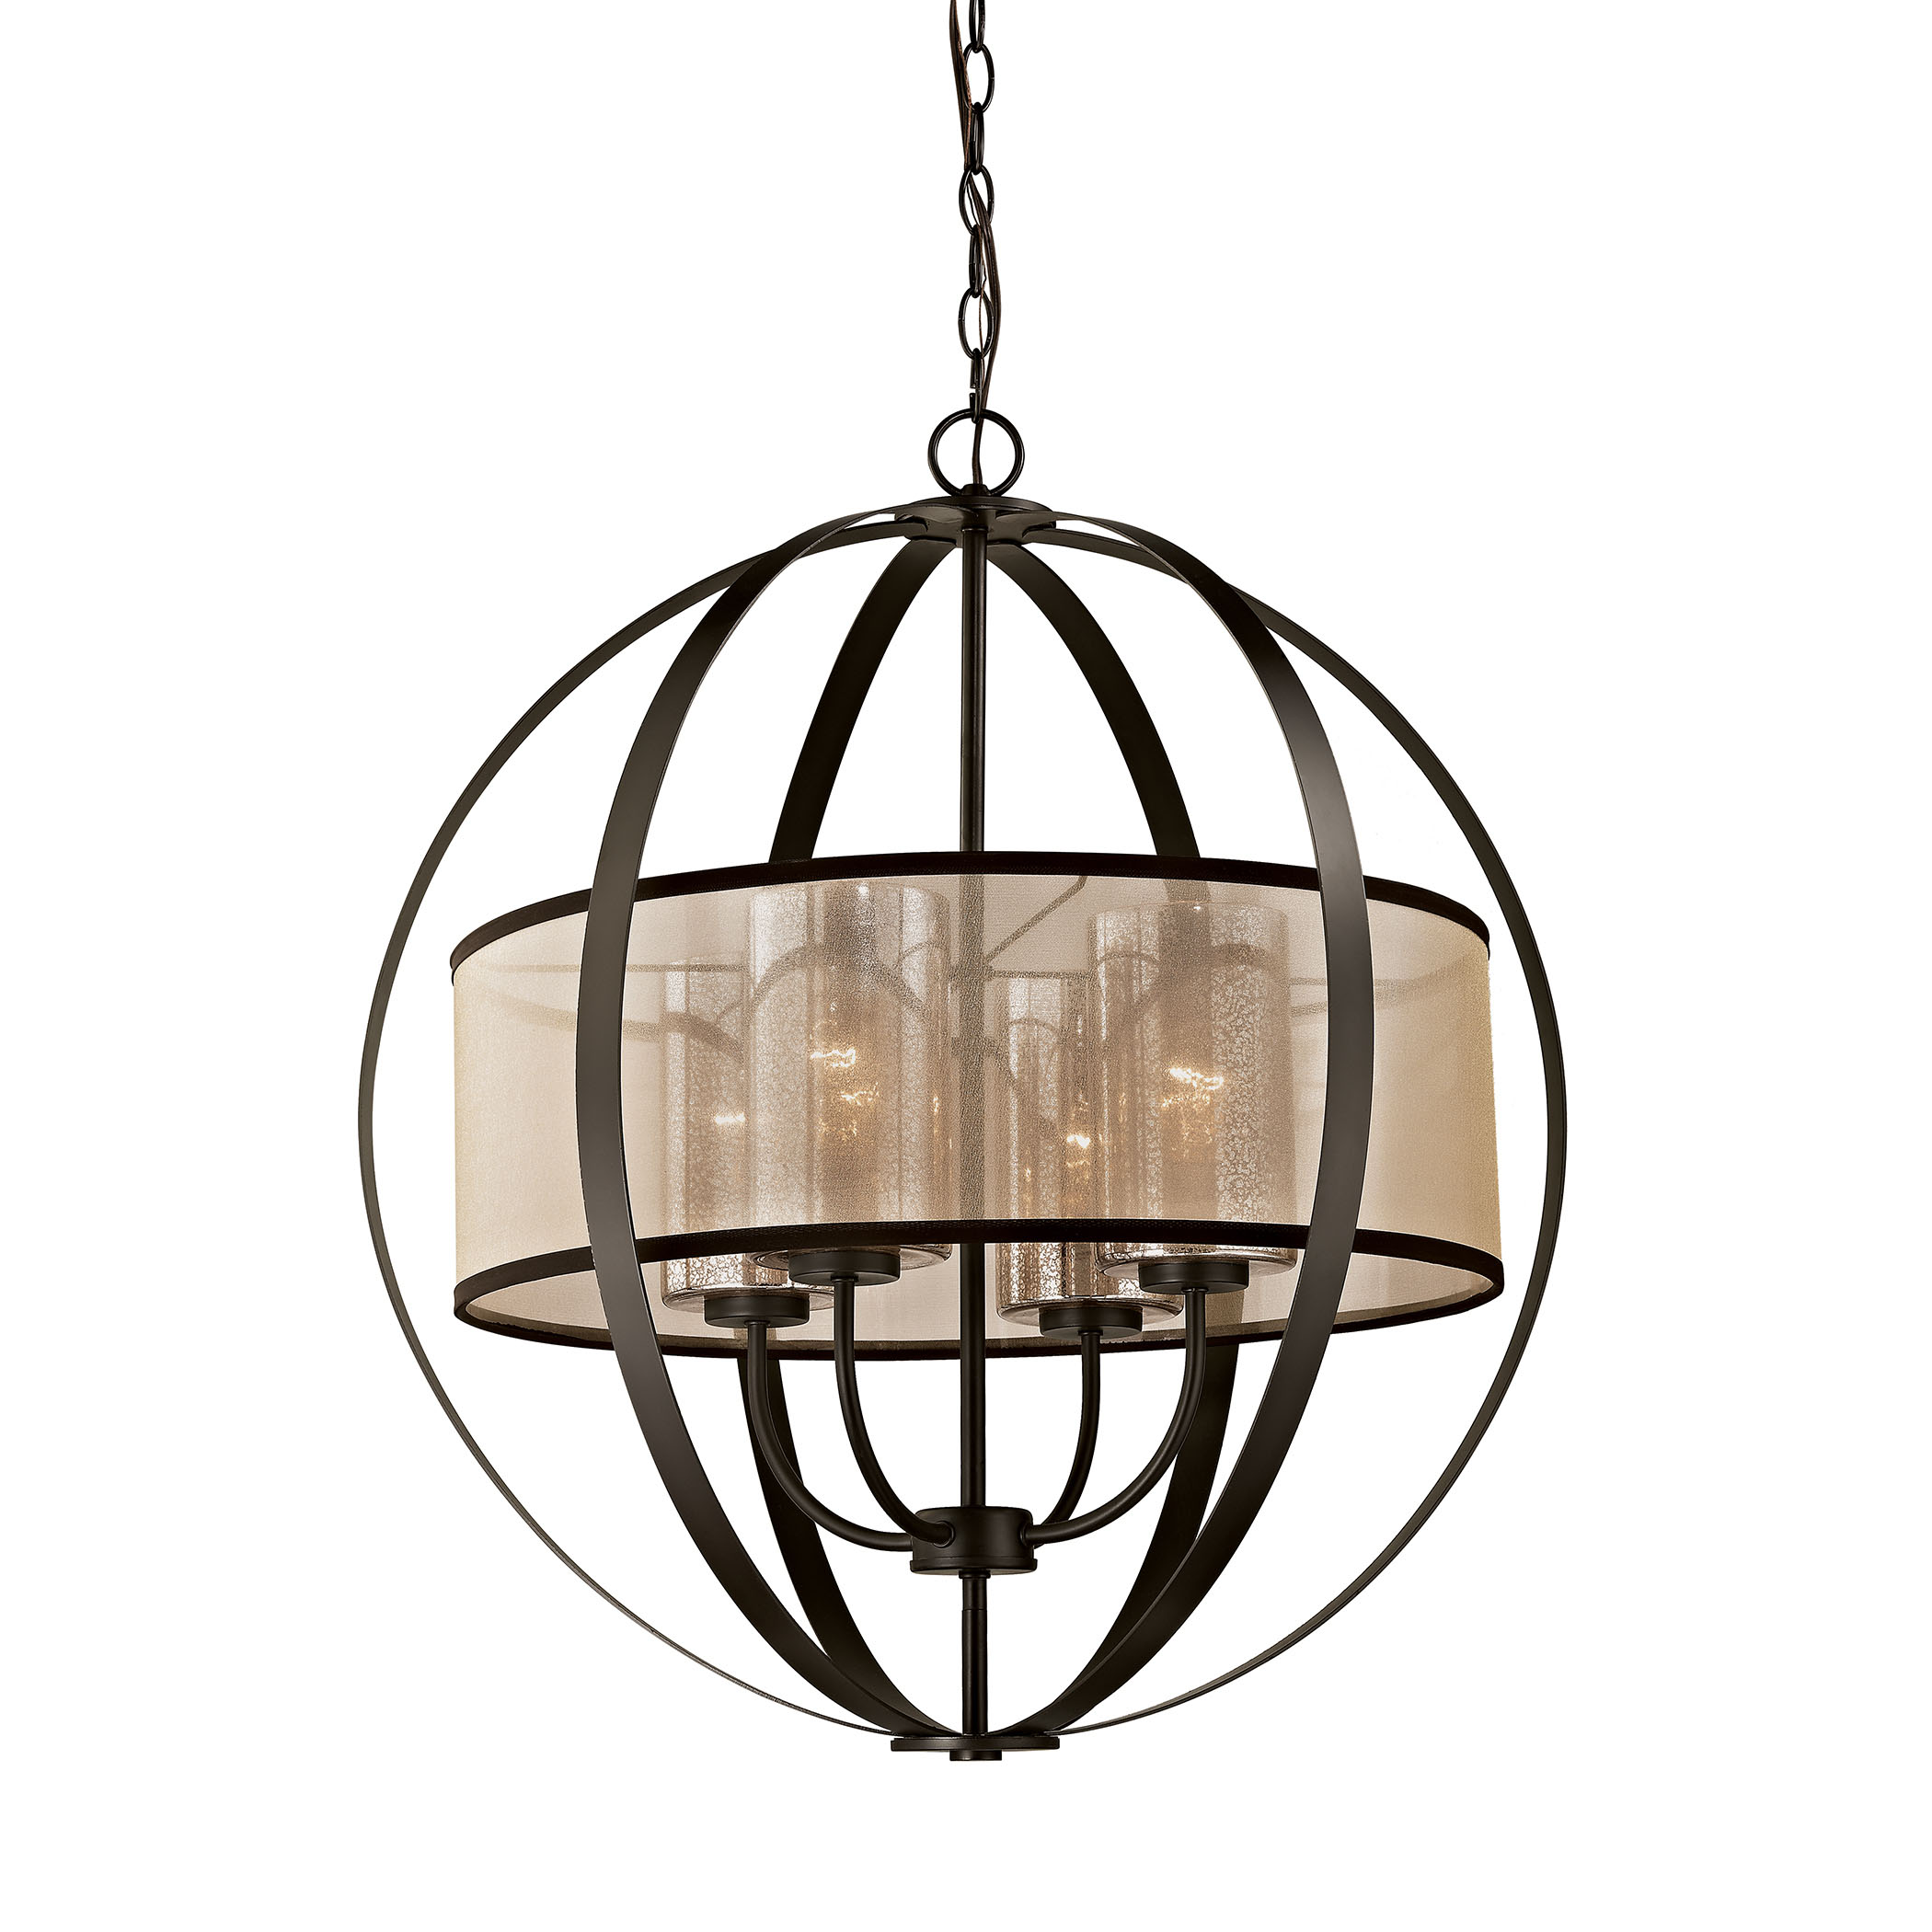 ELK Lighting 4 Diffusion 4 Light Chandelier in Oil Rubbed